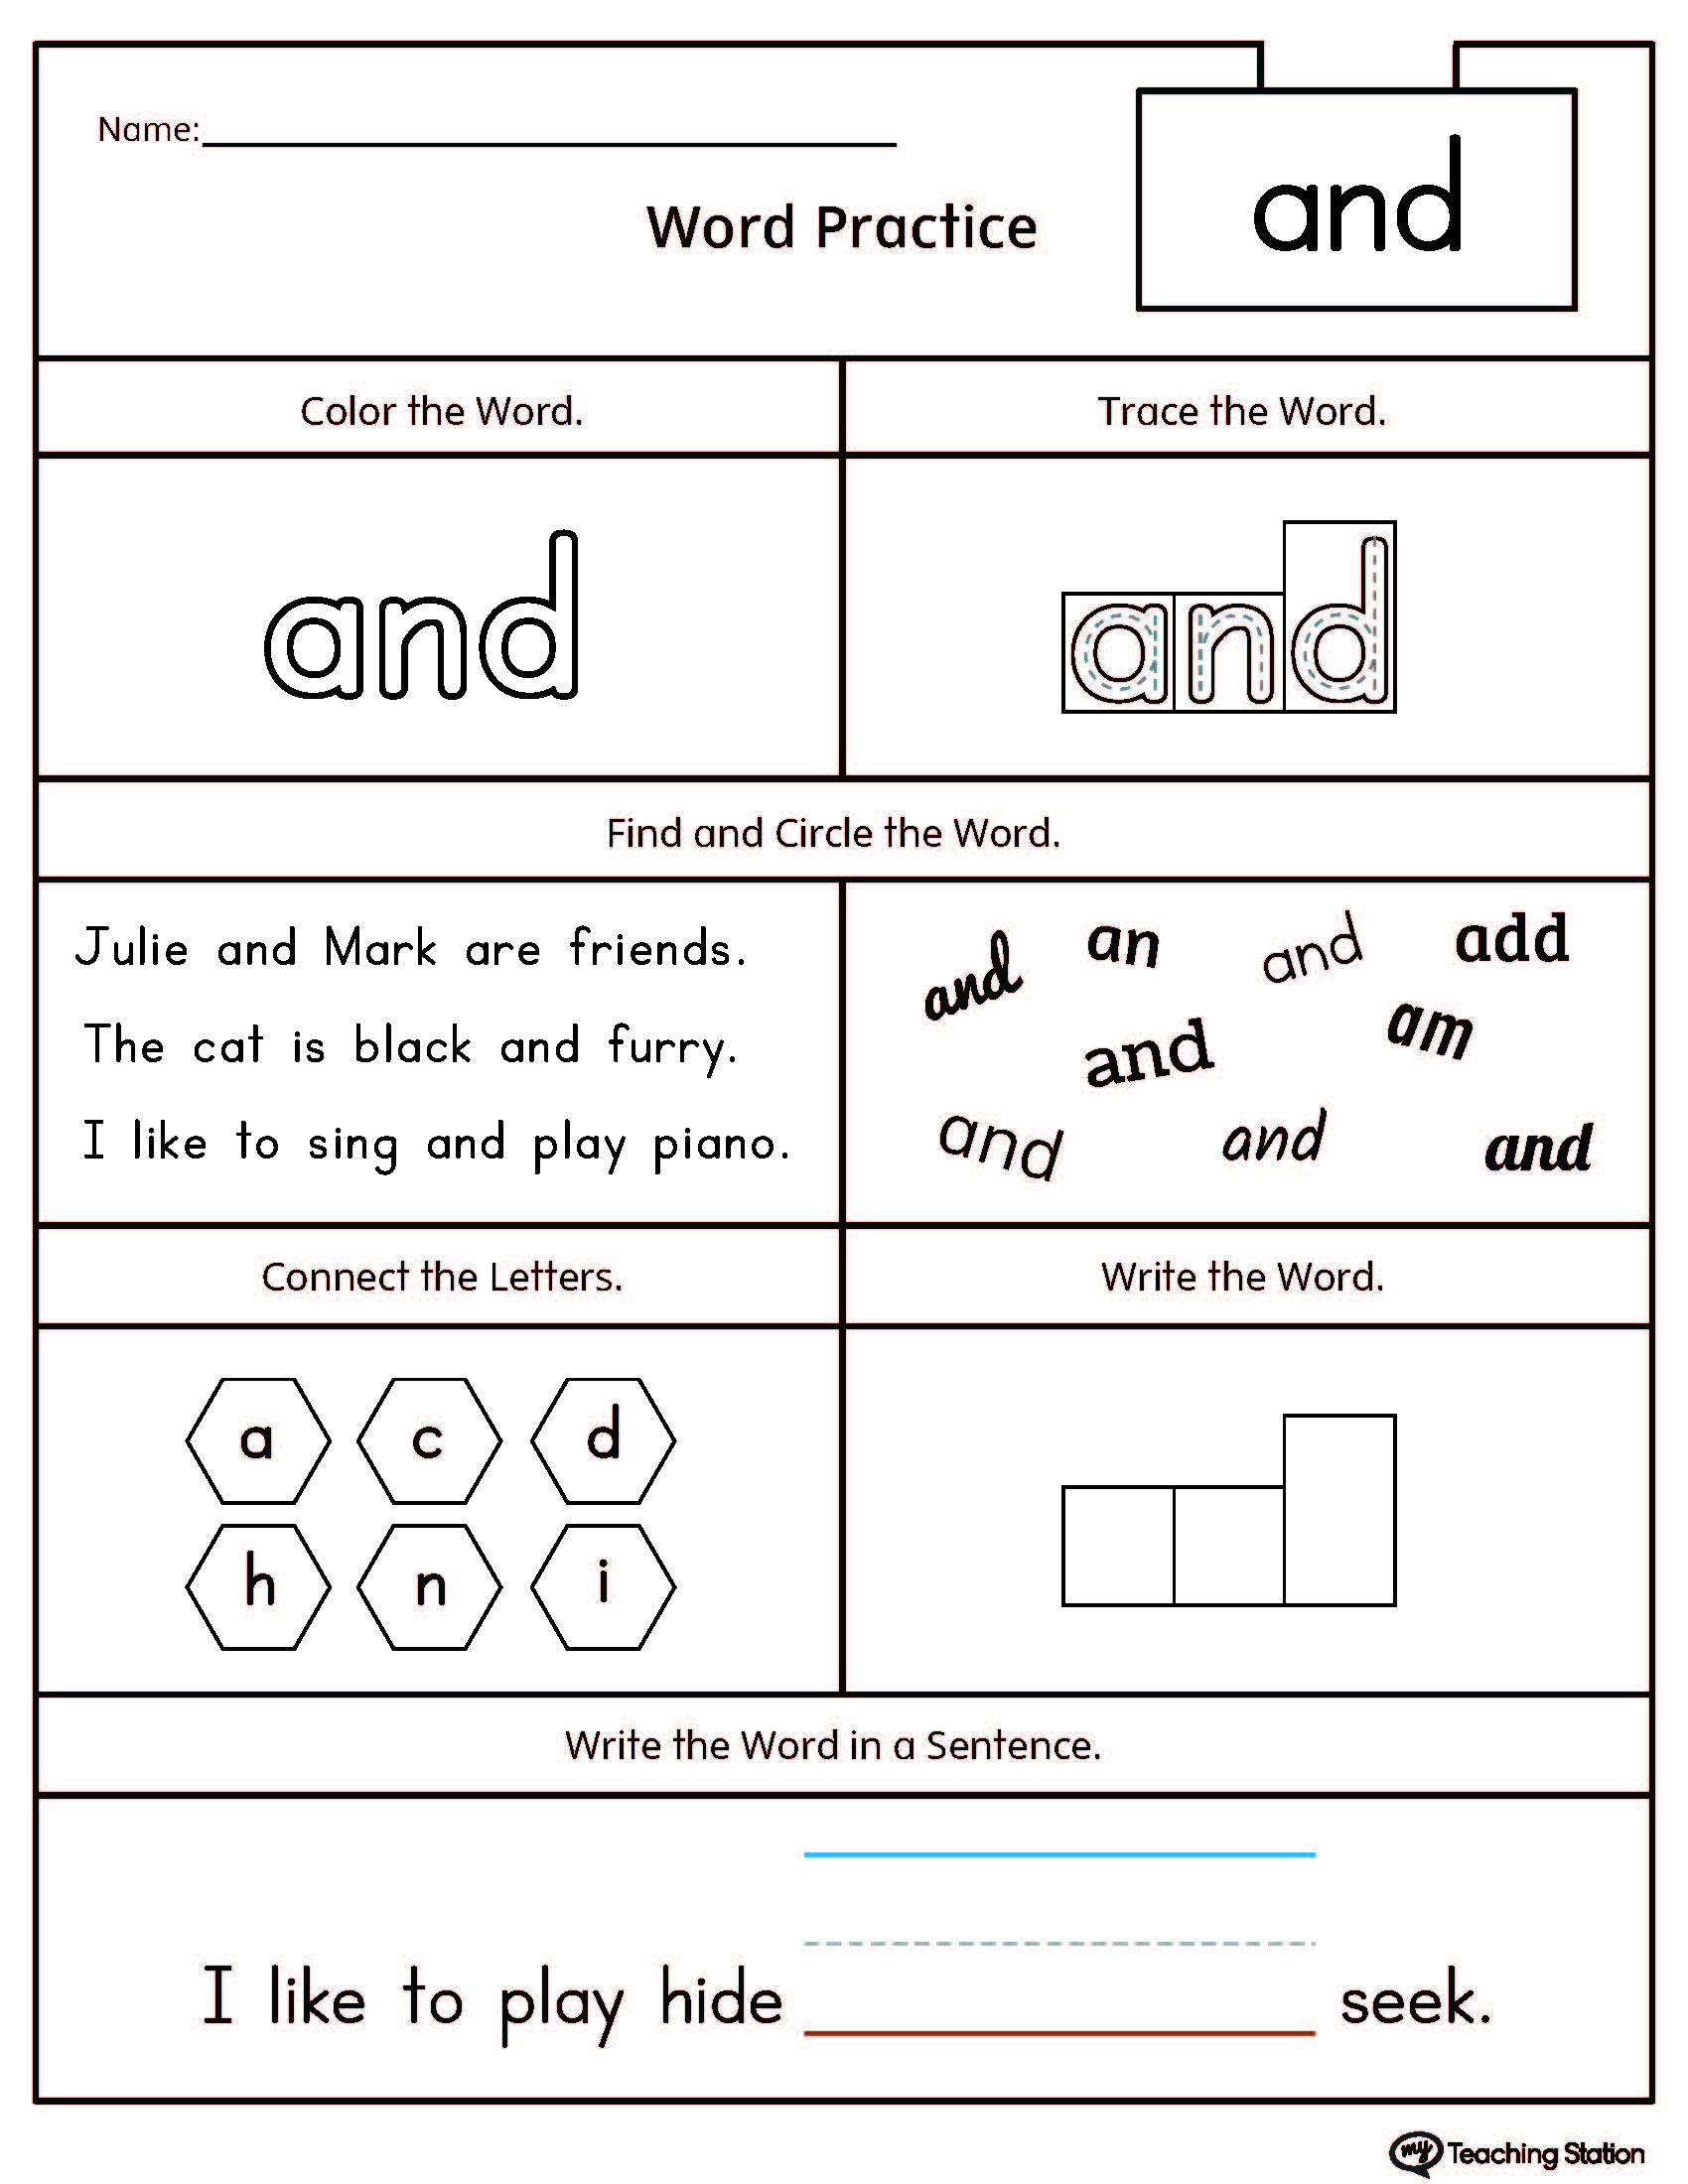 Sight Word The Printable Worksheet | Myteachingstation ...